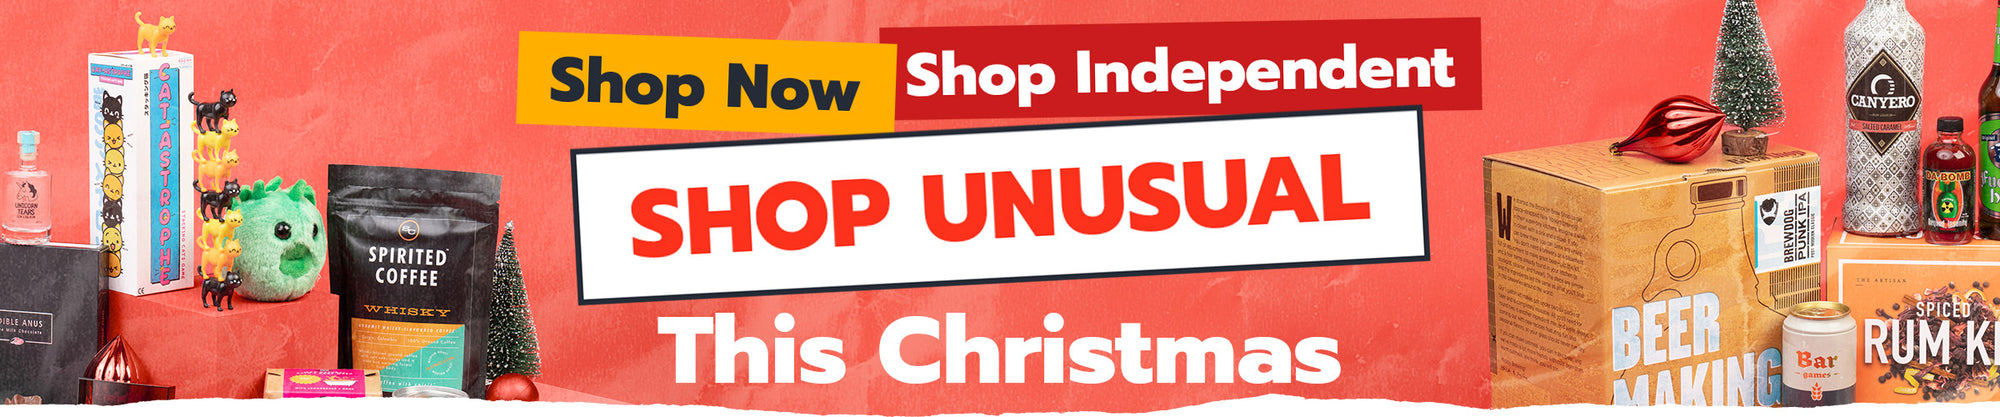 Shop Unusual This Christmas